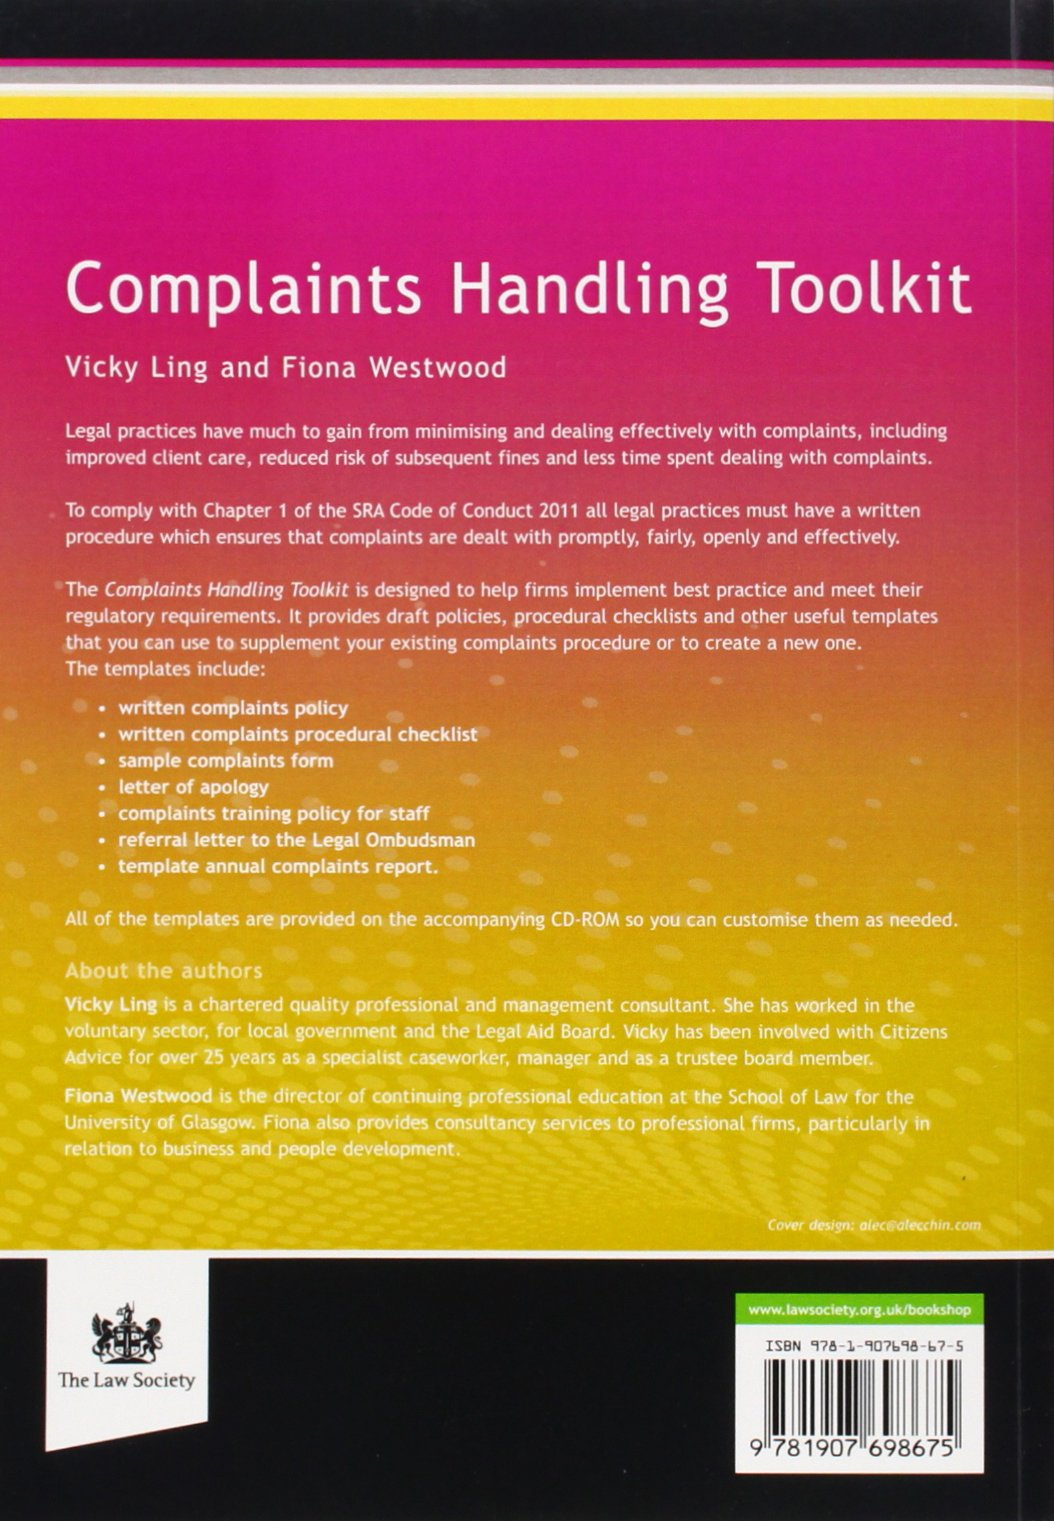 Complaints handling toolkit risk and compliance service vicky ling complaints handling toolkit risk and compliance service vicky ling fiona westwood 9781907698675 amazon books spiritdancerdesigns Image collections